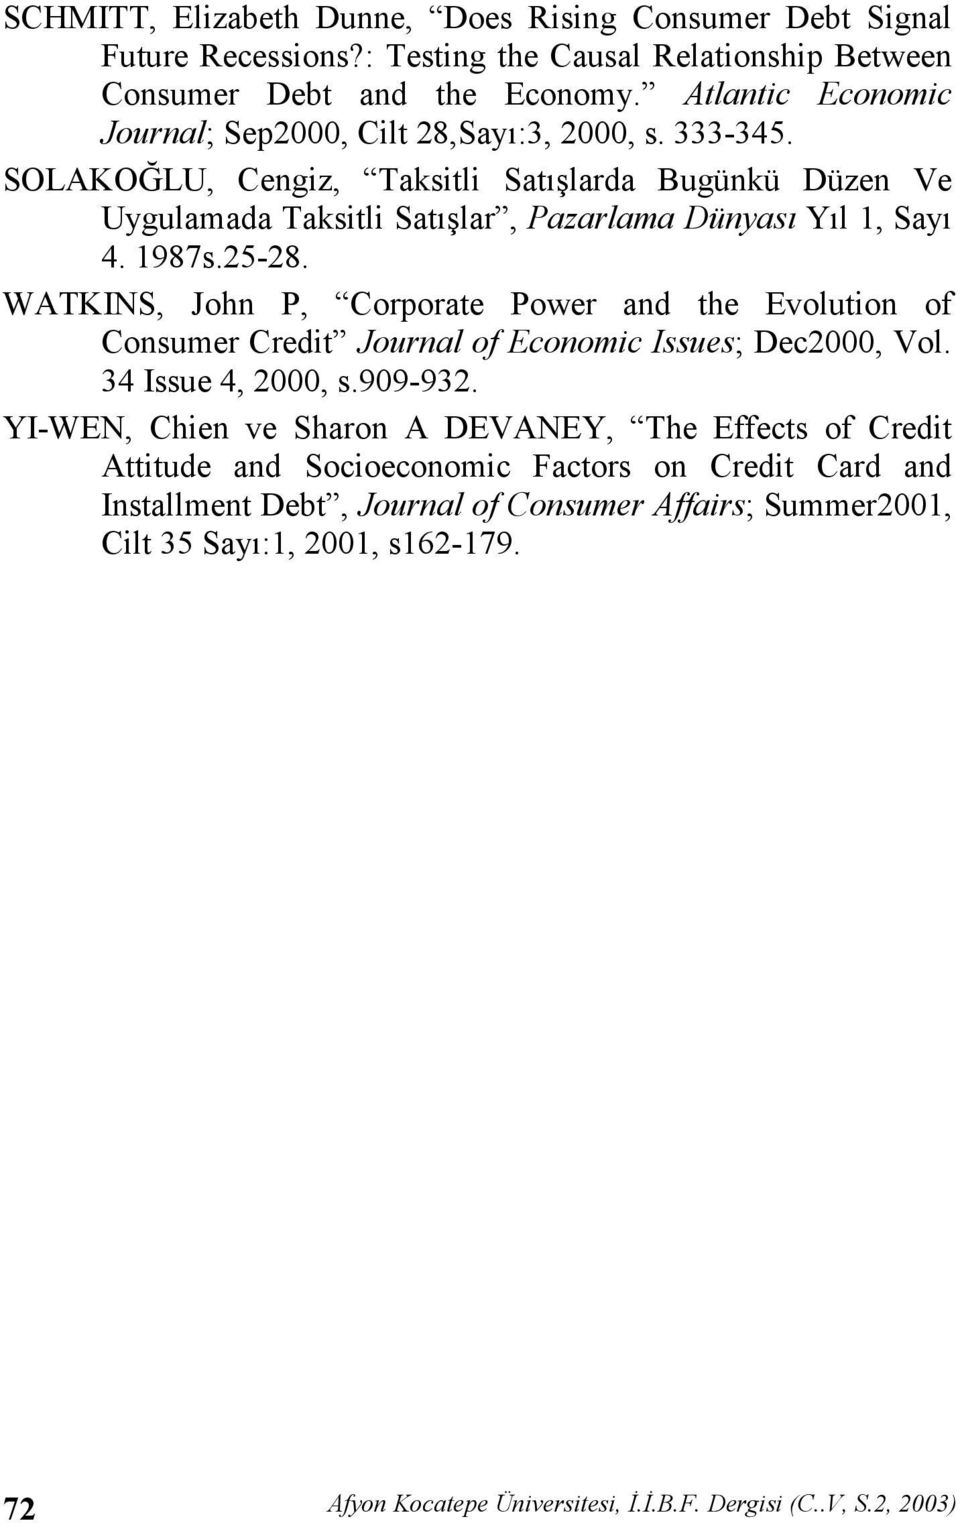 25-28. WATKINS, John P, Corporate Power and the Evolution of Consumer Credit Journal of Economic Issues; Dec2000, Vol. 34 Issue 4, 2000, s.909-932.